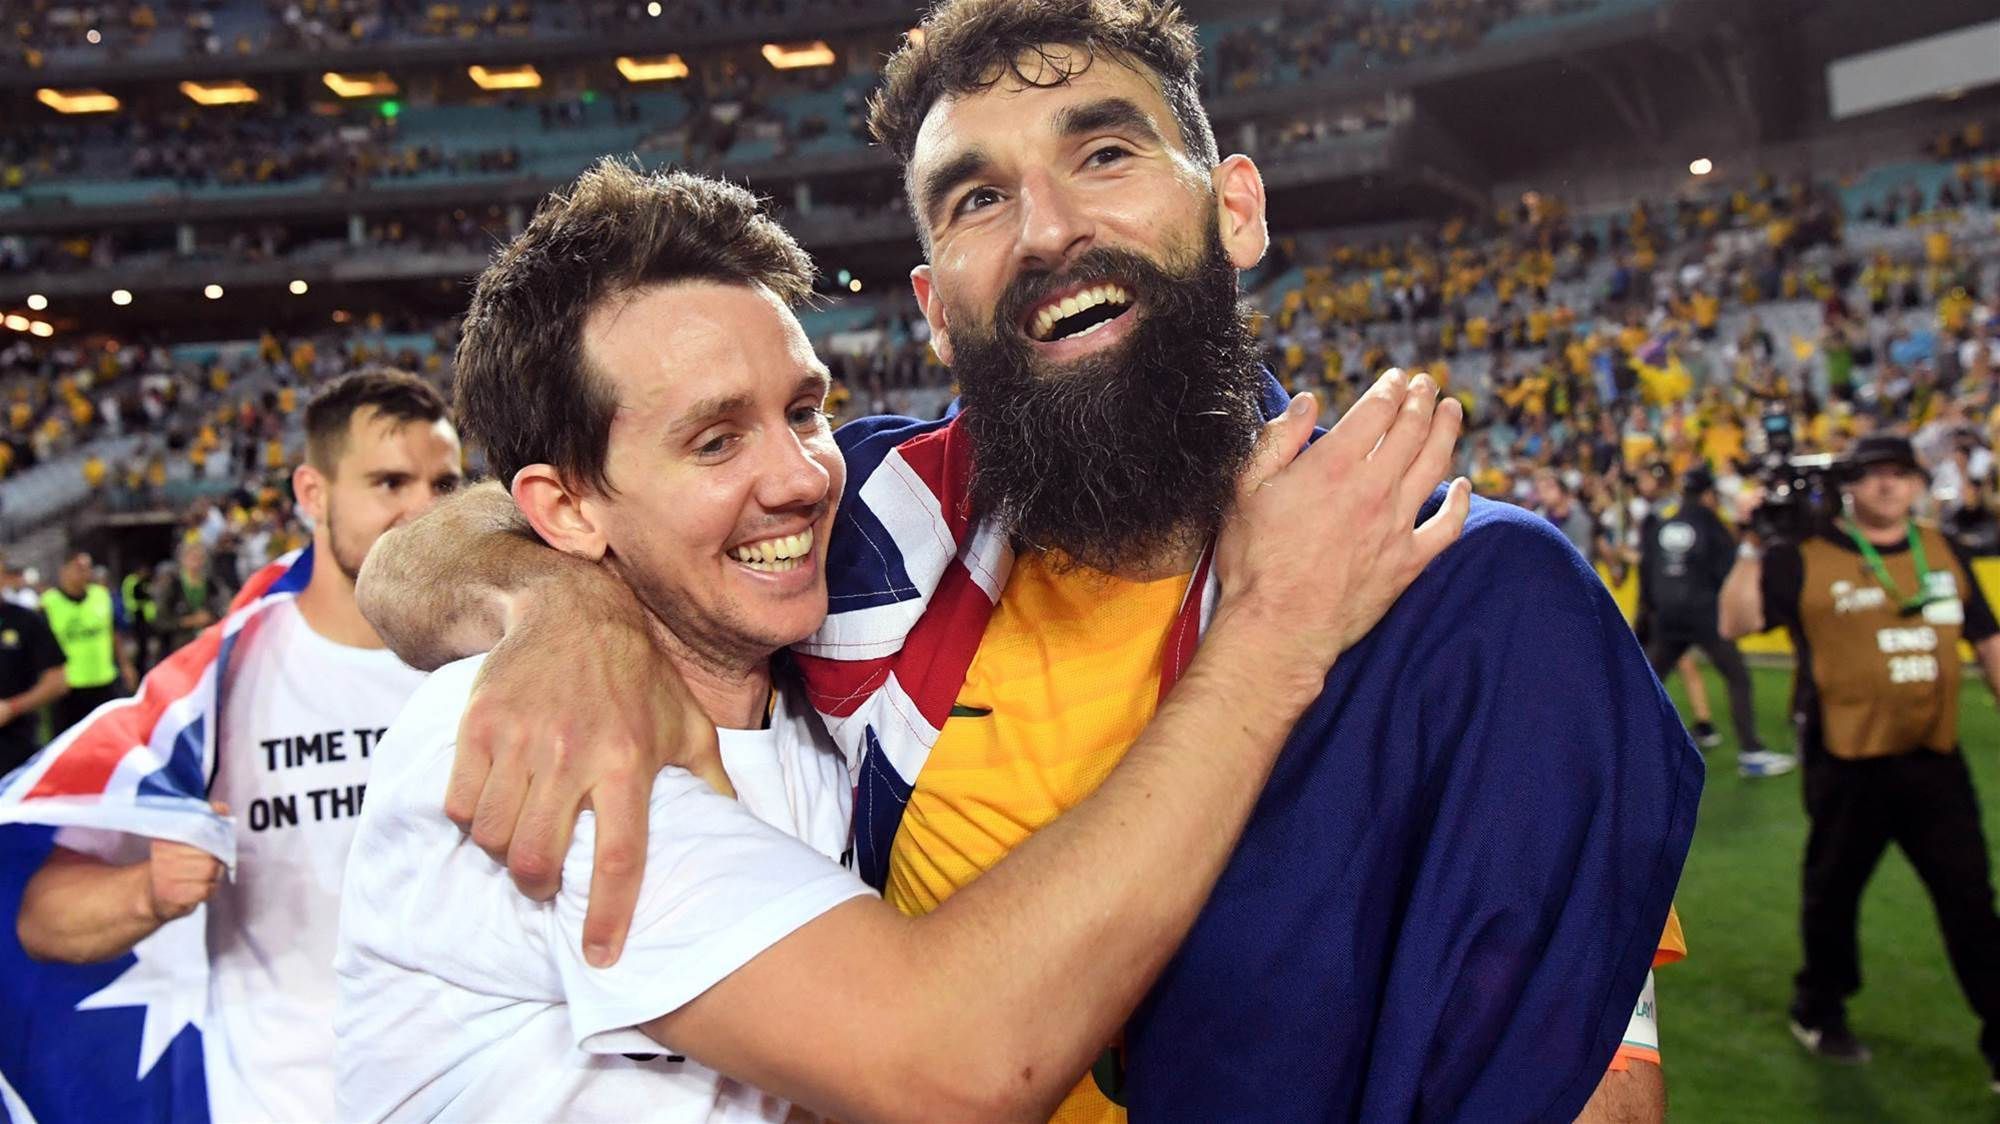 Hat-trick hero Jedinak 'happy to chip in'